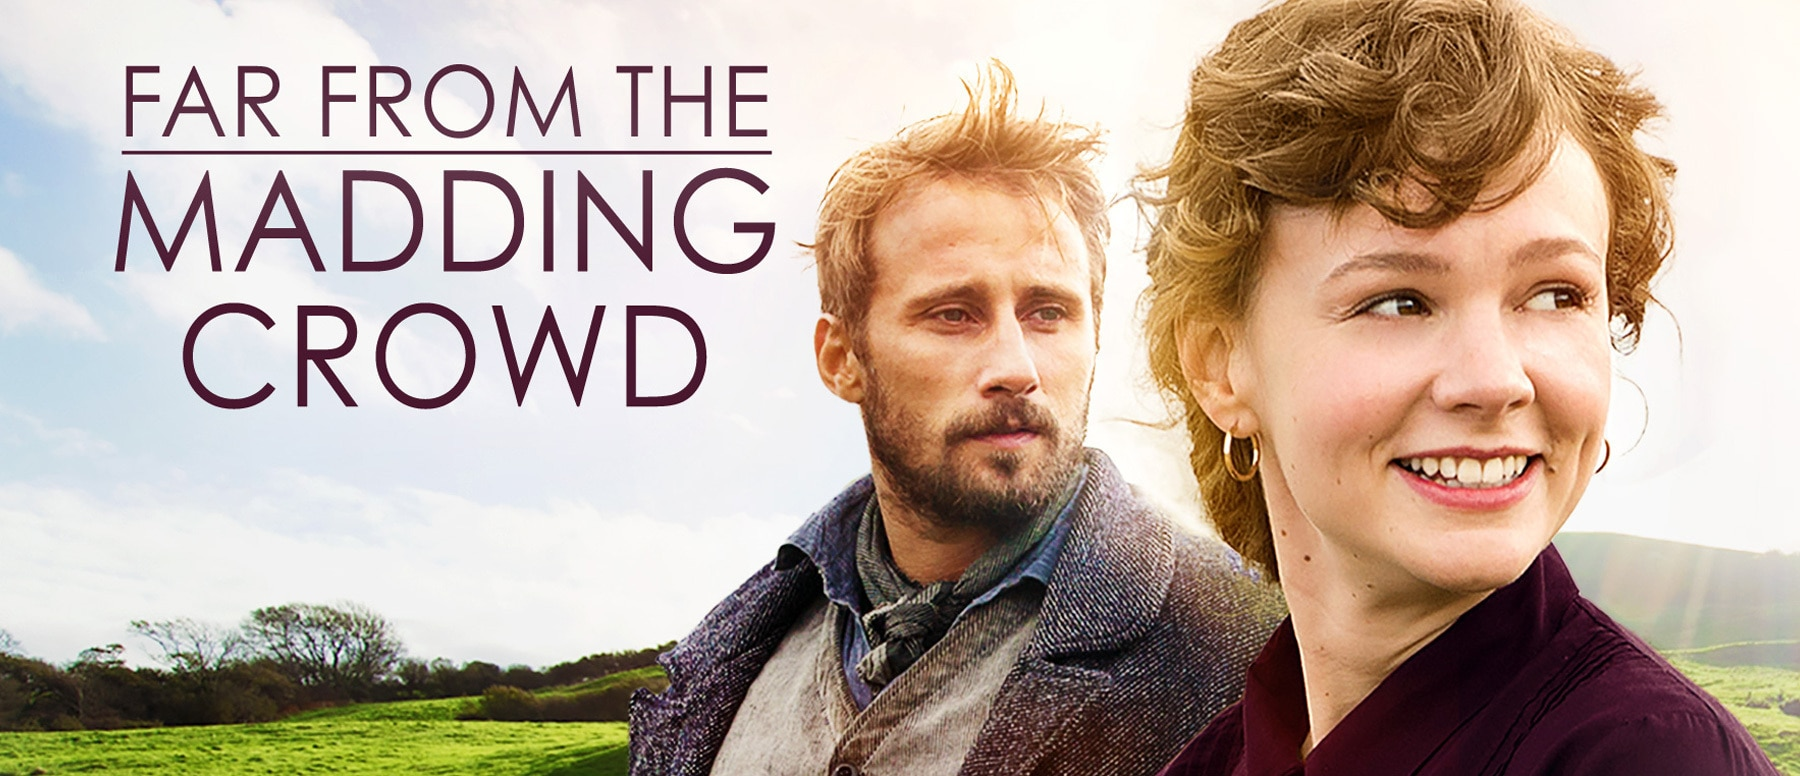 Far from the Madding Crowd Hero